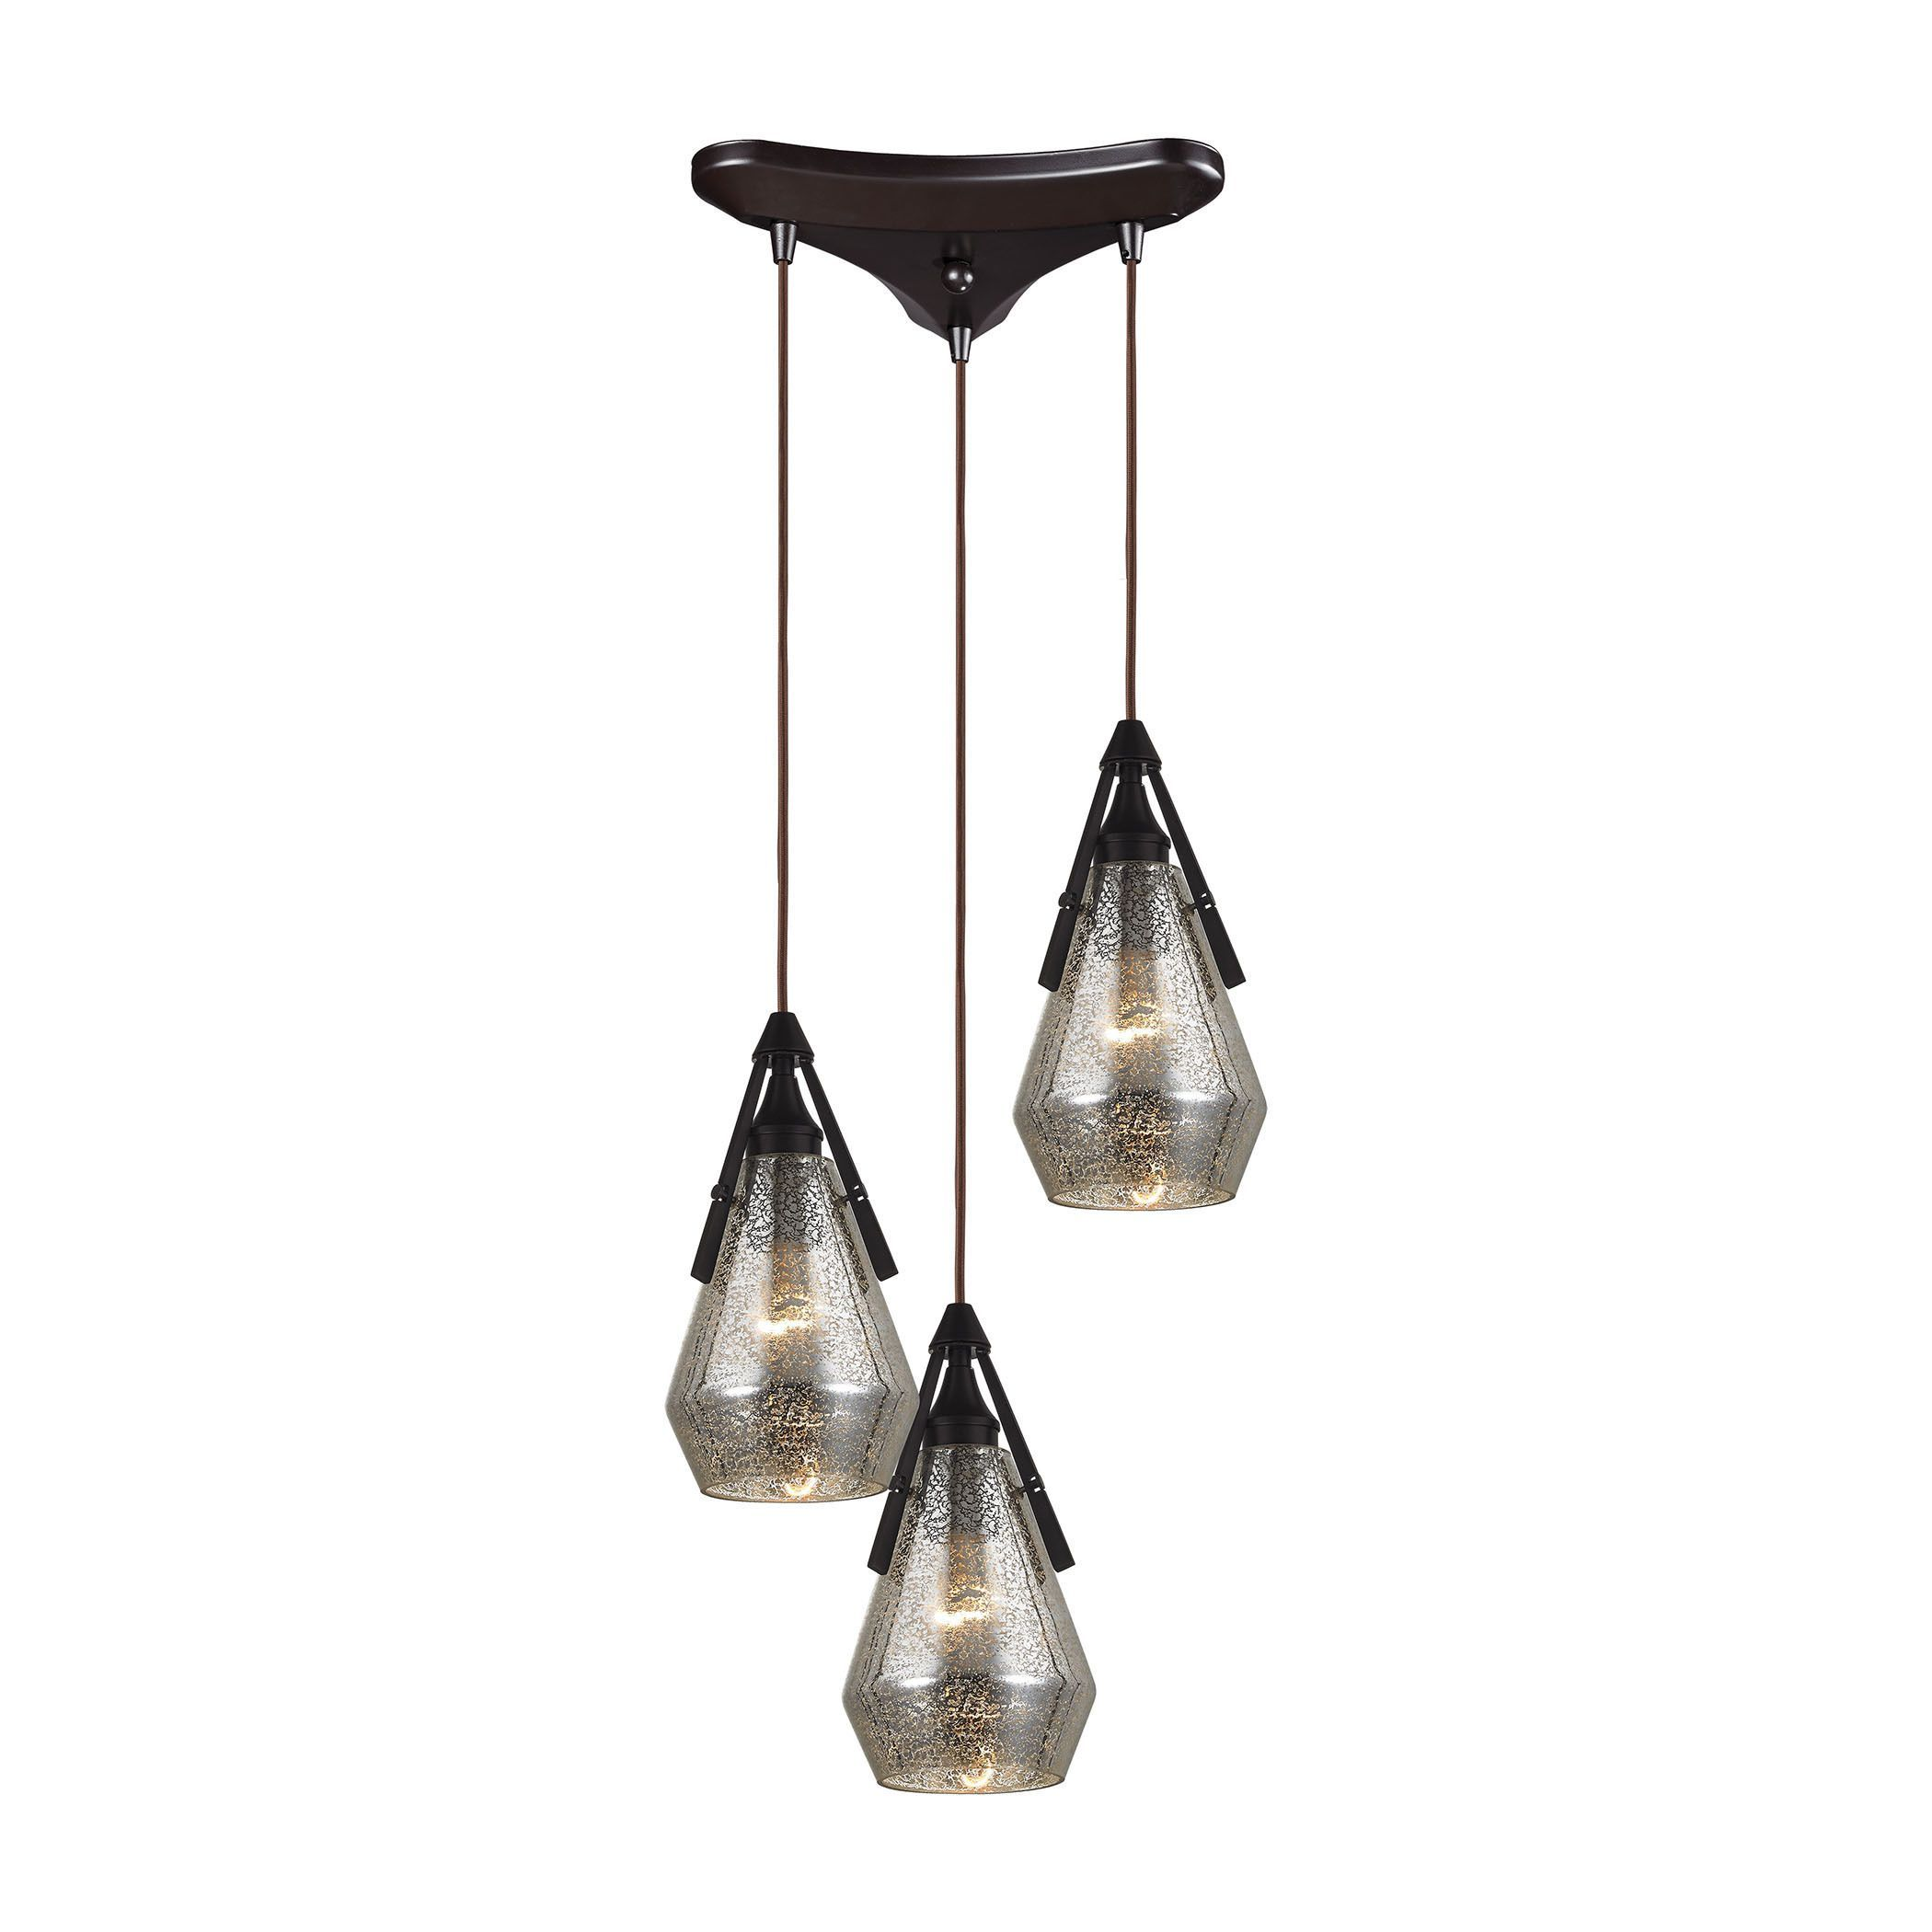 mercury glass shades pendant light fixtures uk fixture